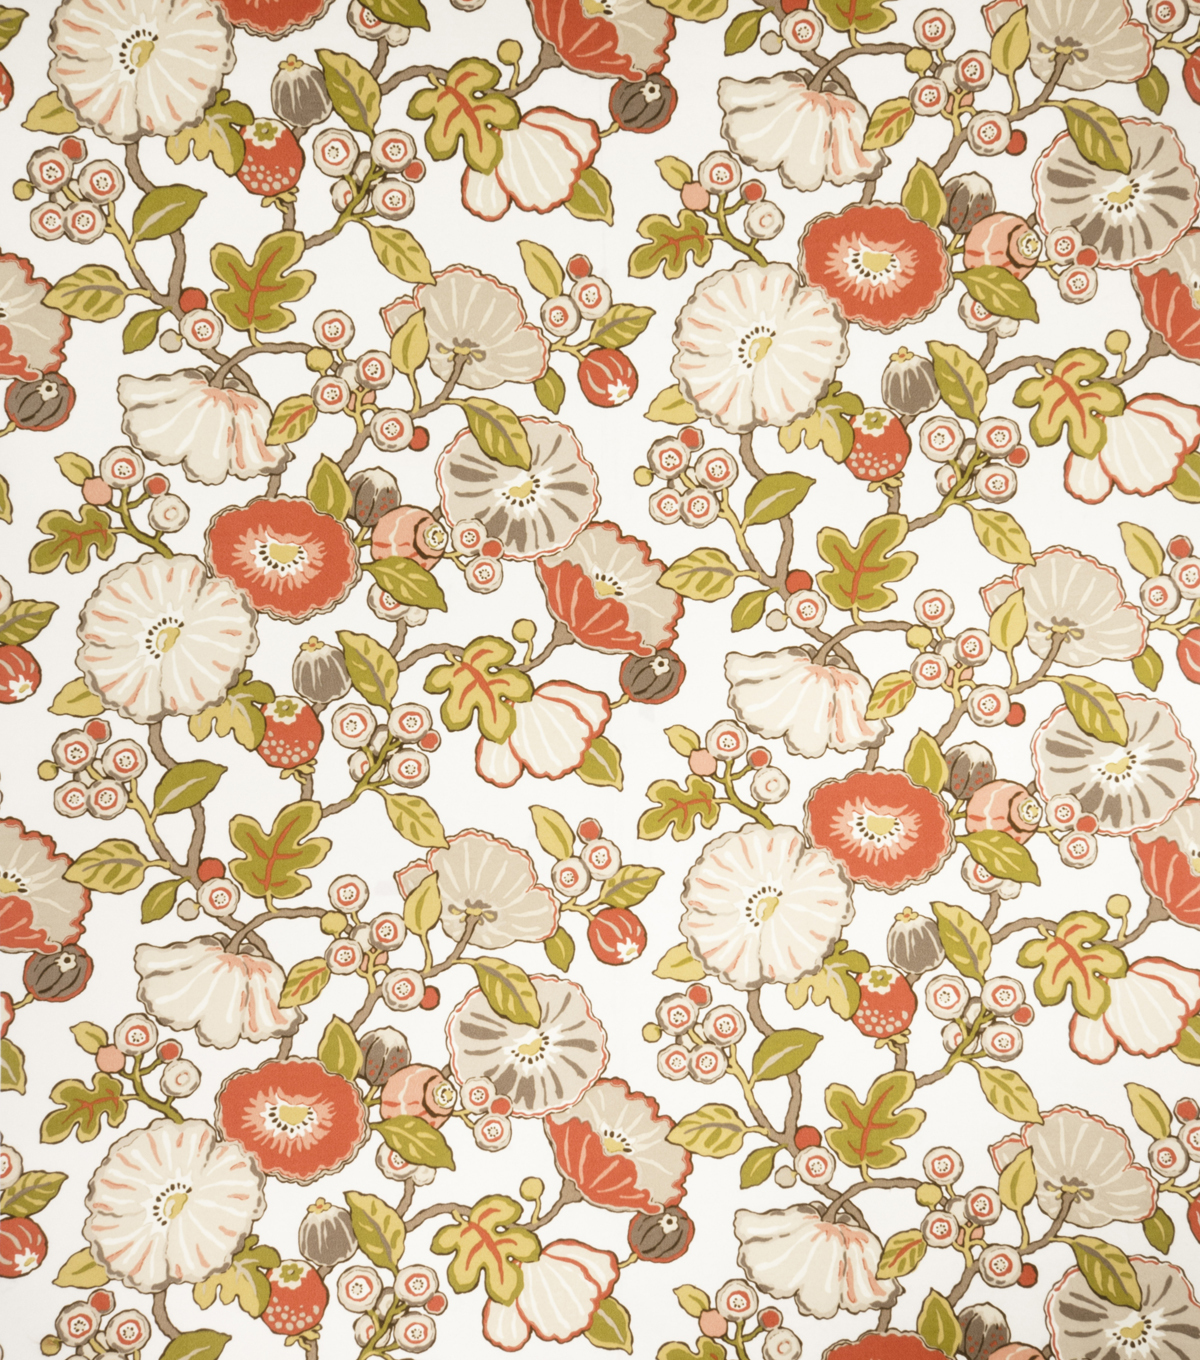 Home Decor 8\u0022x8\u0022 Fabric Swatch-Eaton Square Allie Passion Fruit